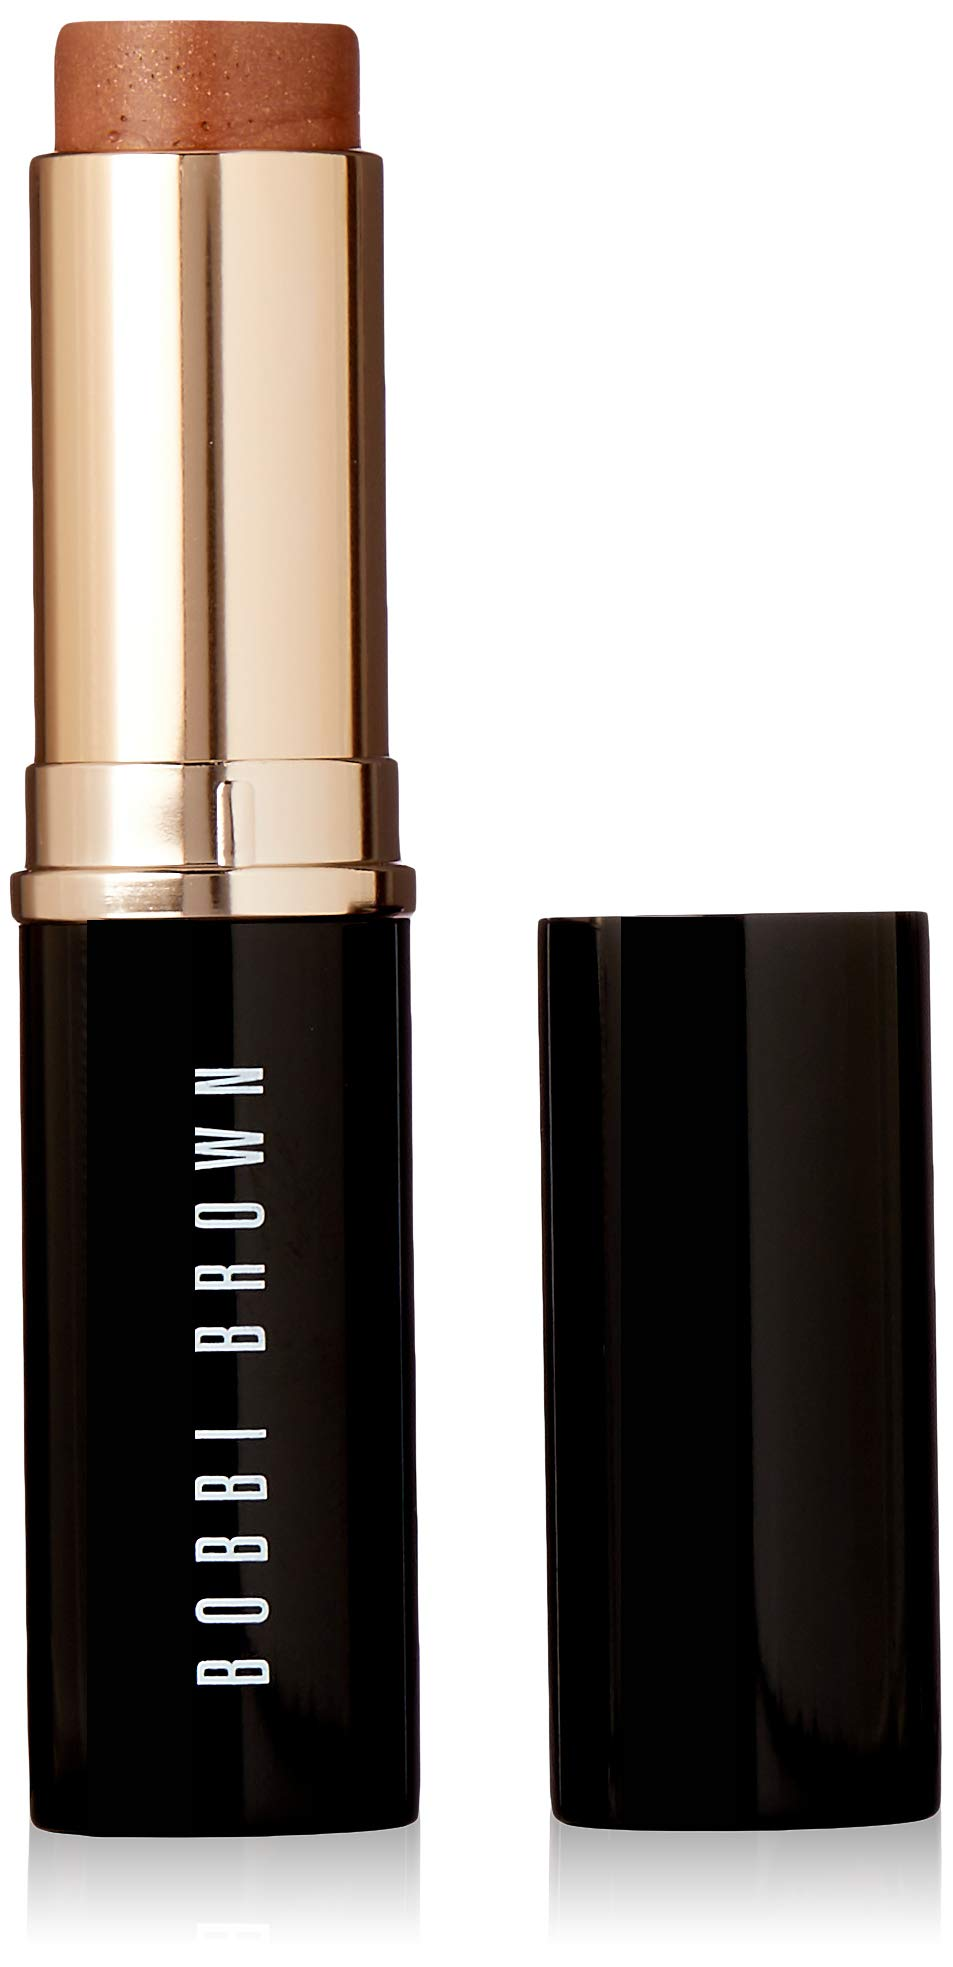 Bobbi Brown Glow Stick Highlighter, Sunkissed, 0.24 Ounce